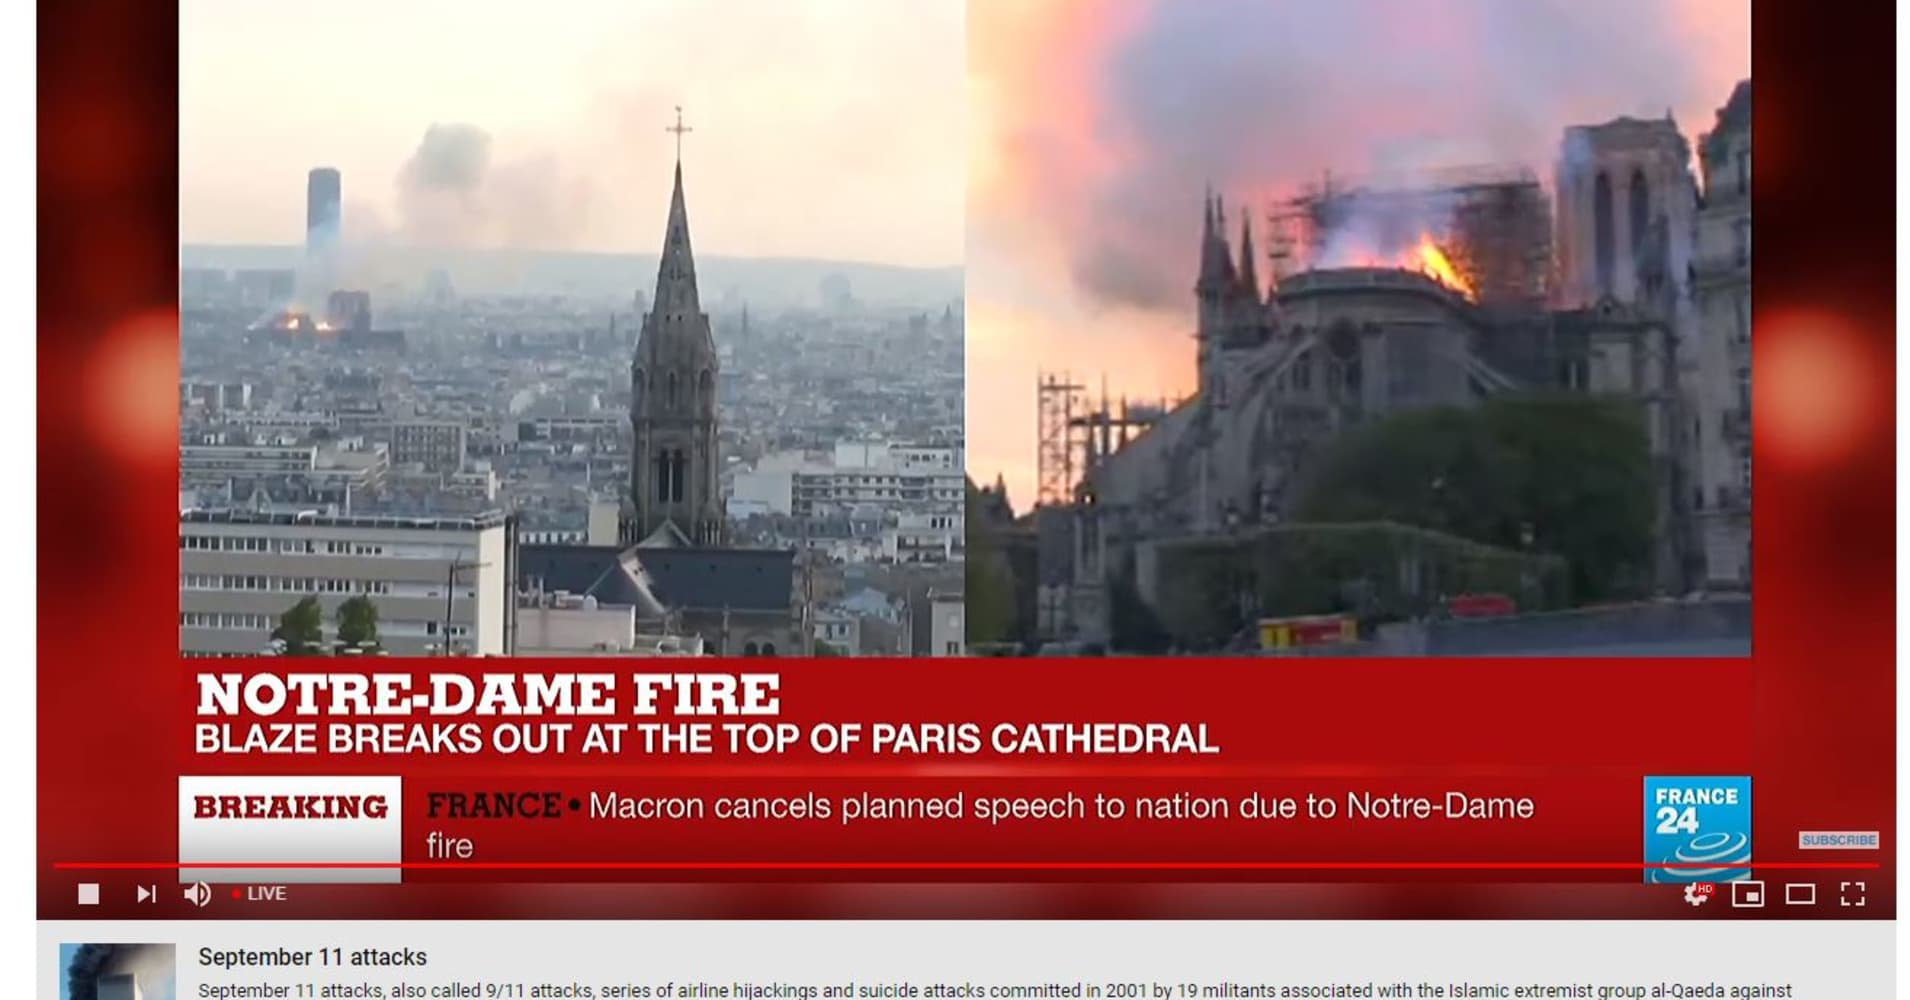 YouTube placed a link to info about 9/11 attacks under Notre Dame fire videos